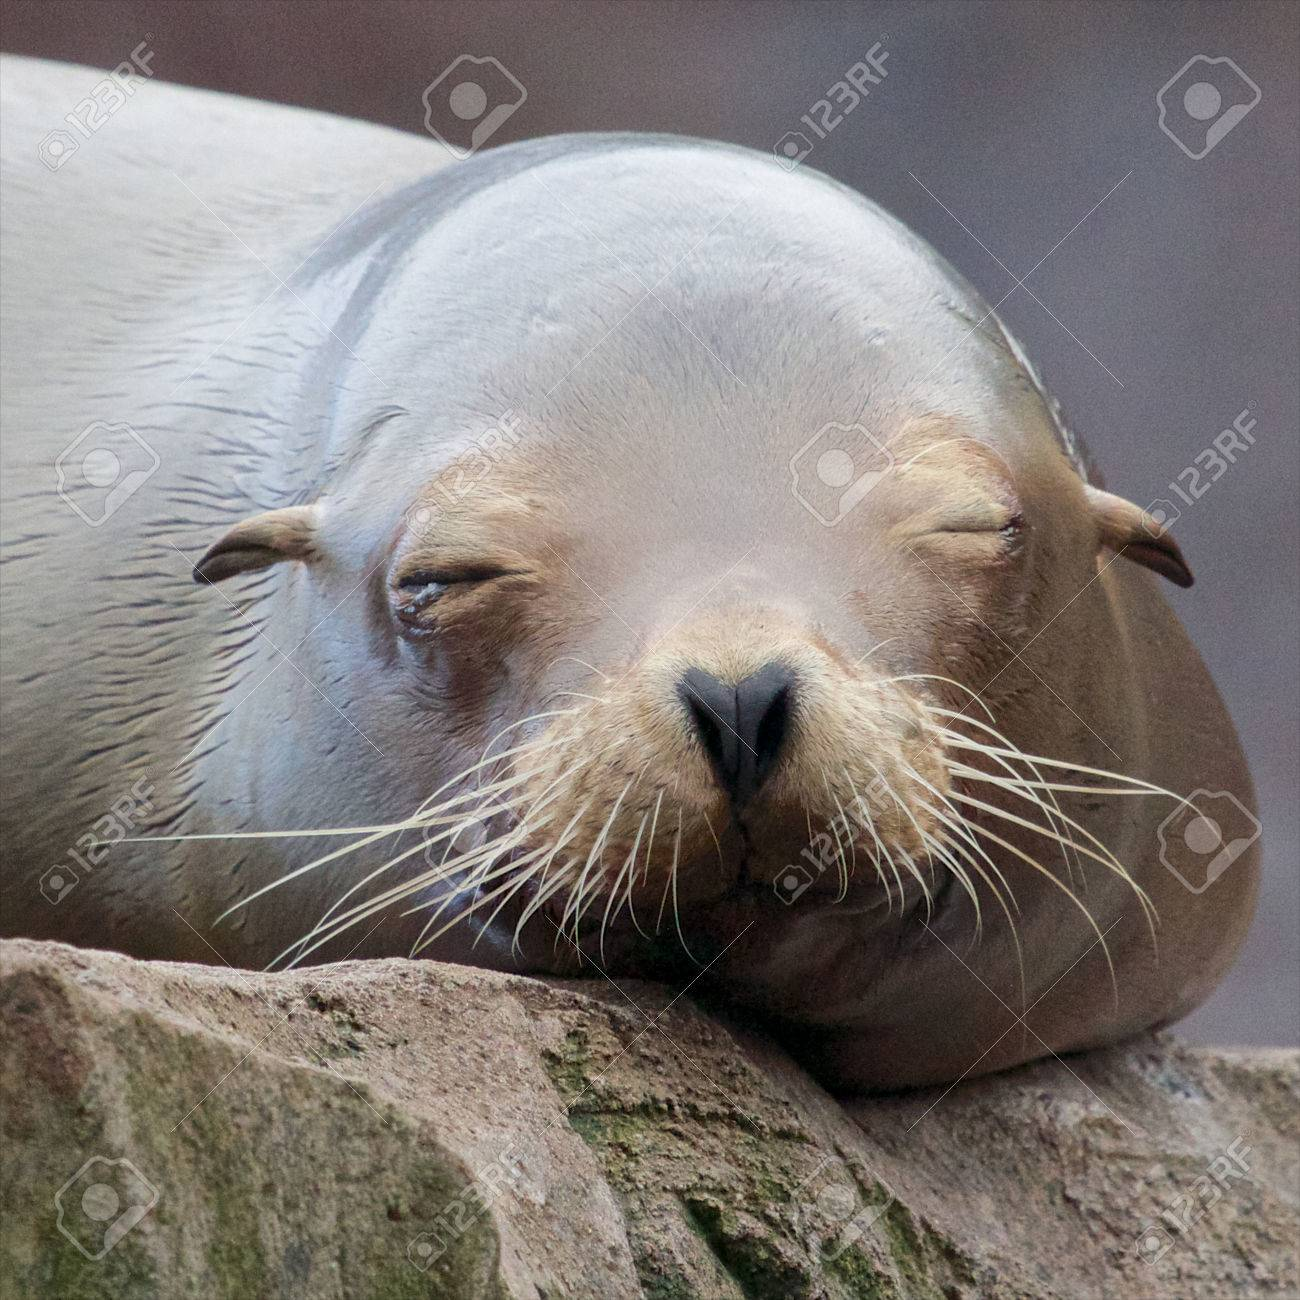 Lazy sea lion sleeping and wallowing on a rock - 25750680